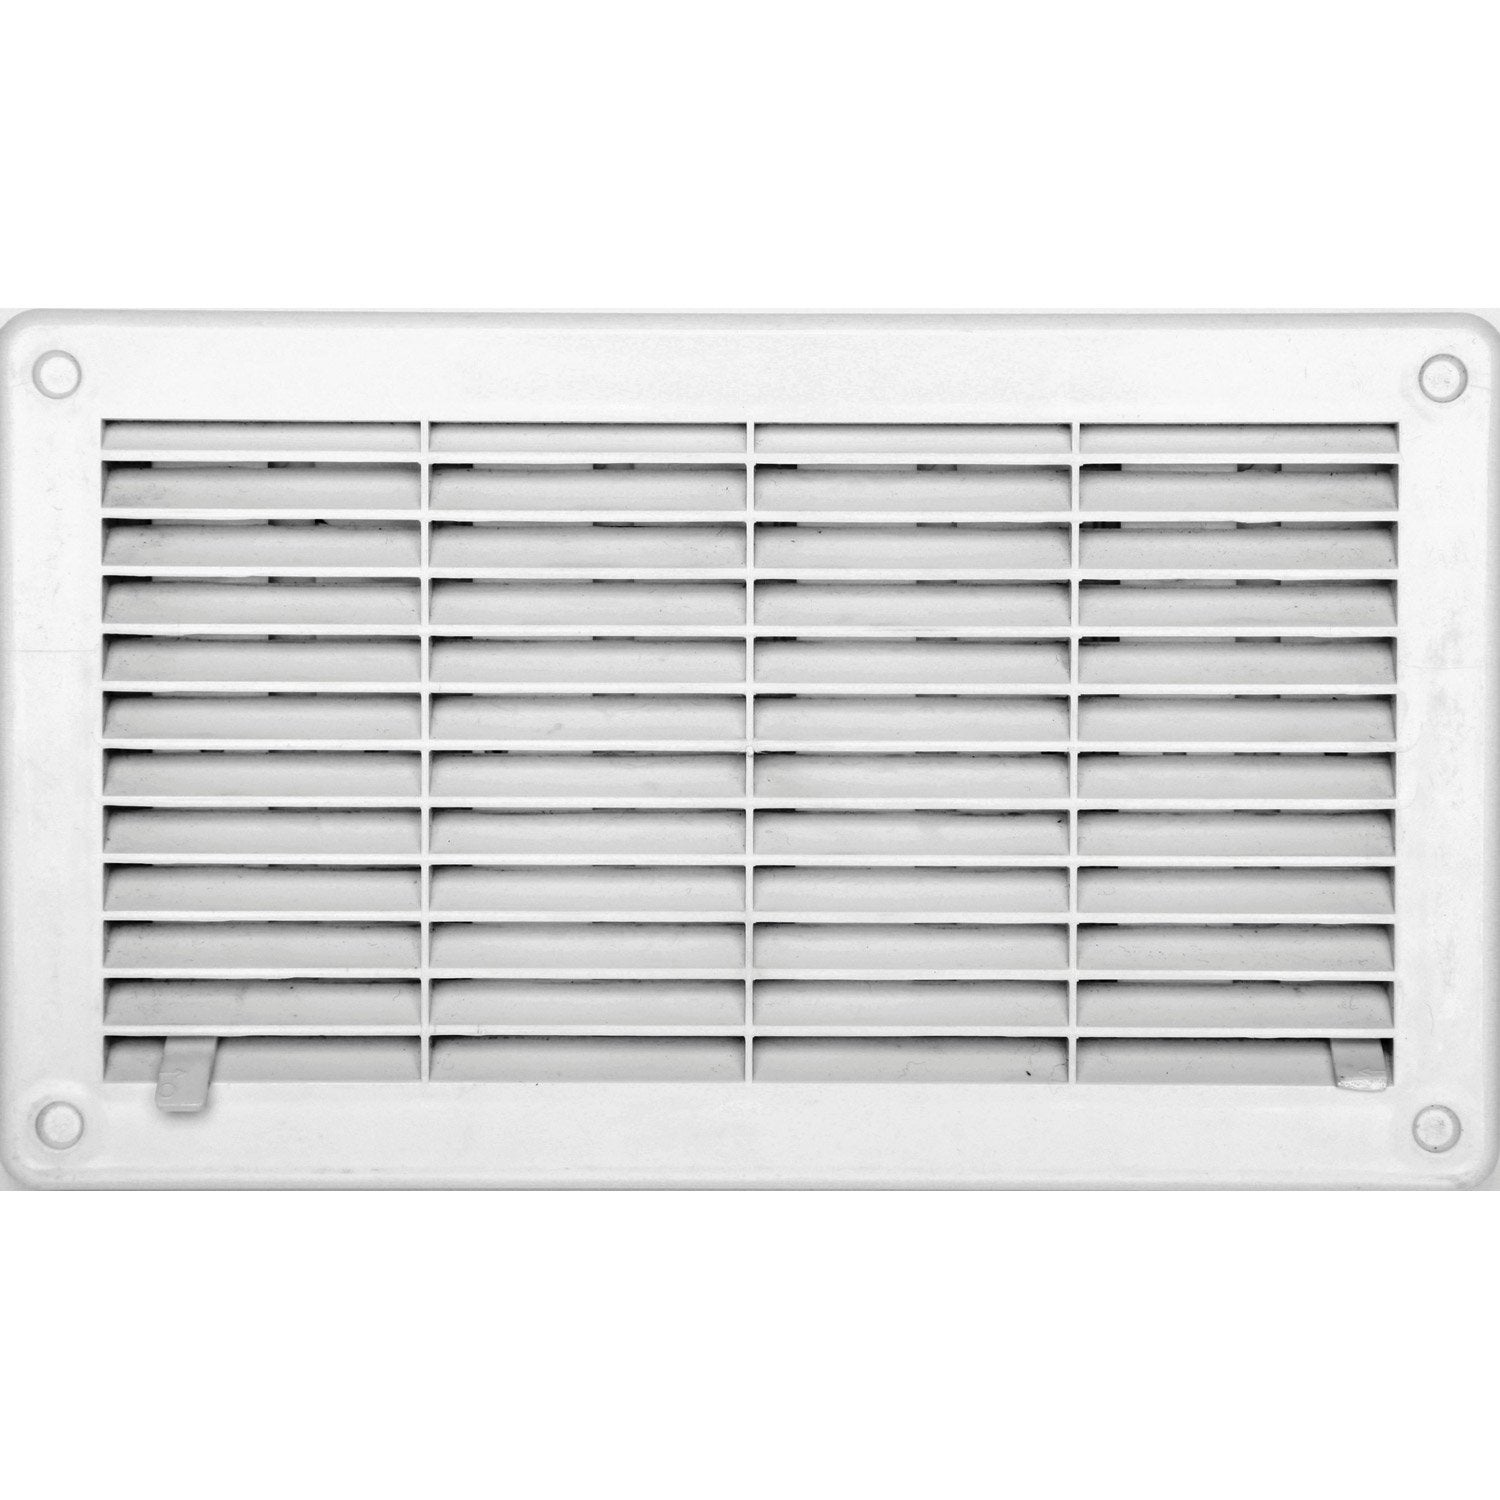 grille d 39 a ration abs naturel x cm leroy merlin